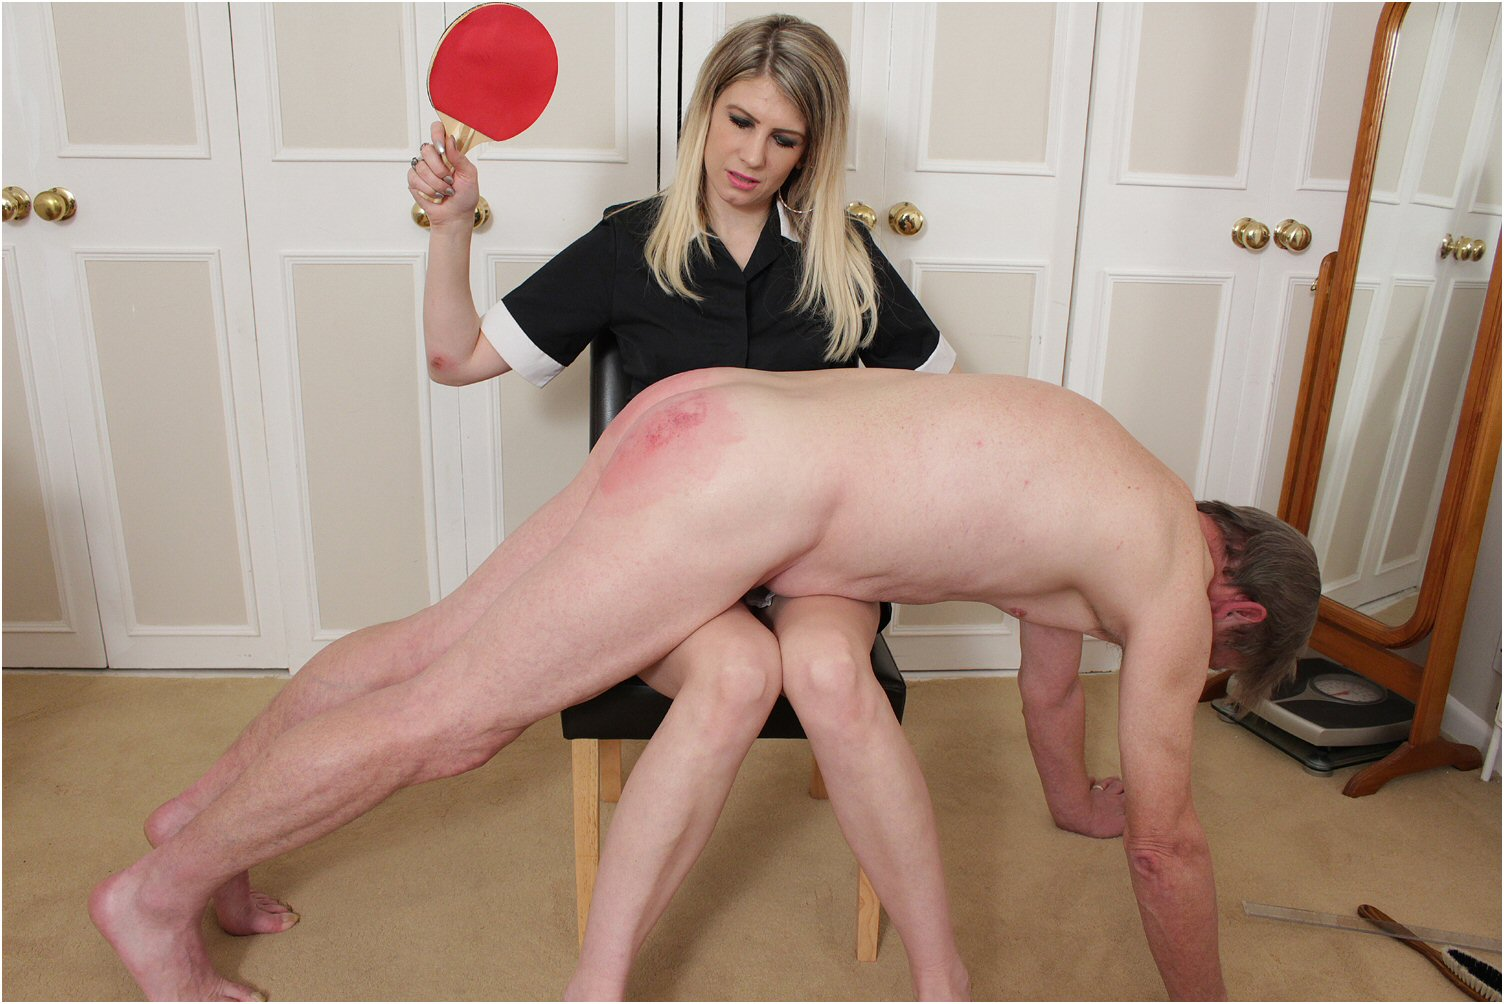 spanked by men